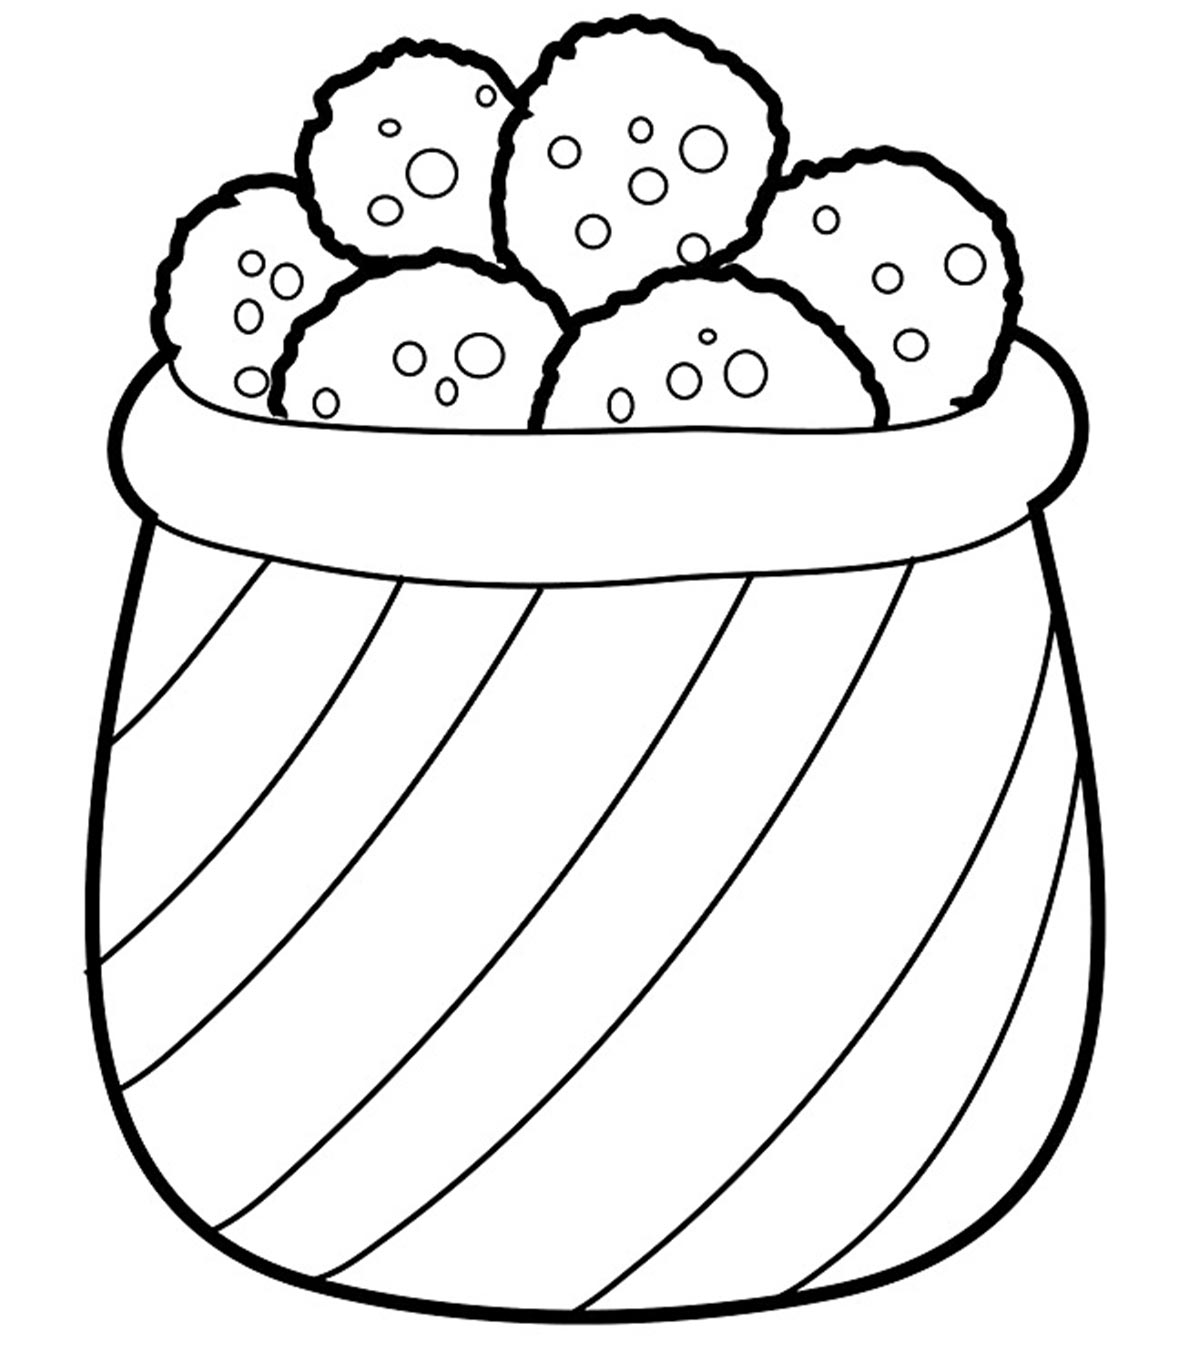 Snacks Coloring Pages - MomJunctionmomjunction.com